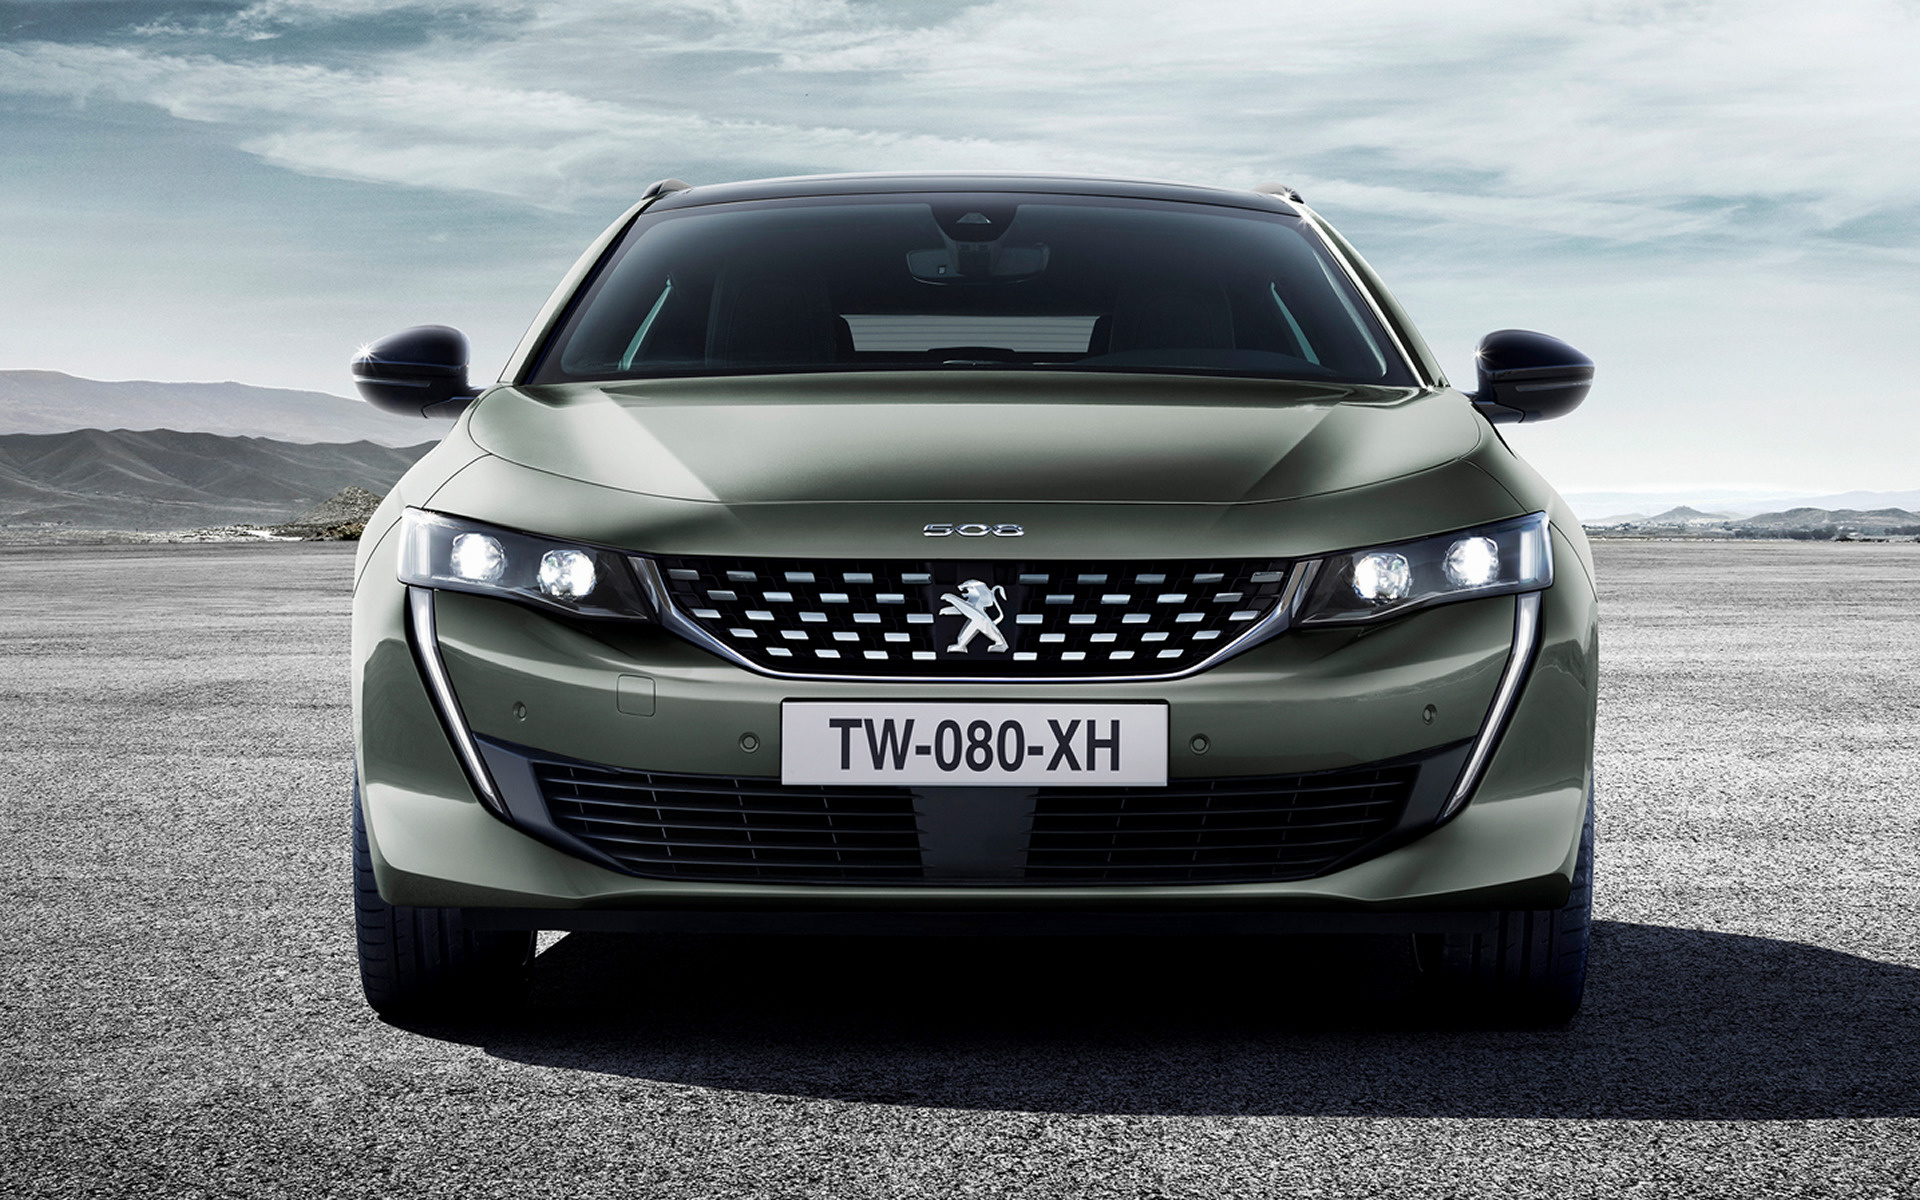 2018 Peugeot 508 SW GT   Wallpapers and HD Images Car Pixel 1920x1200